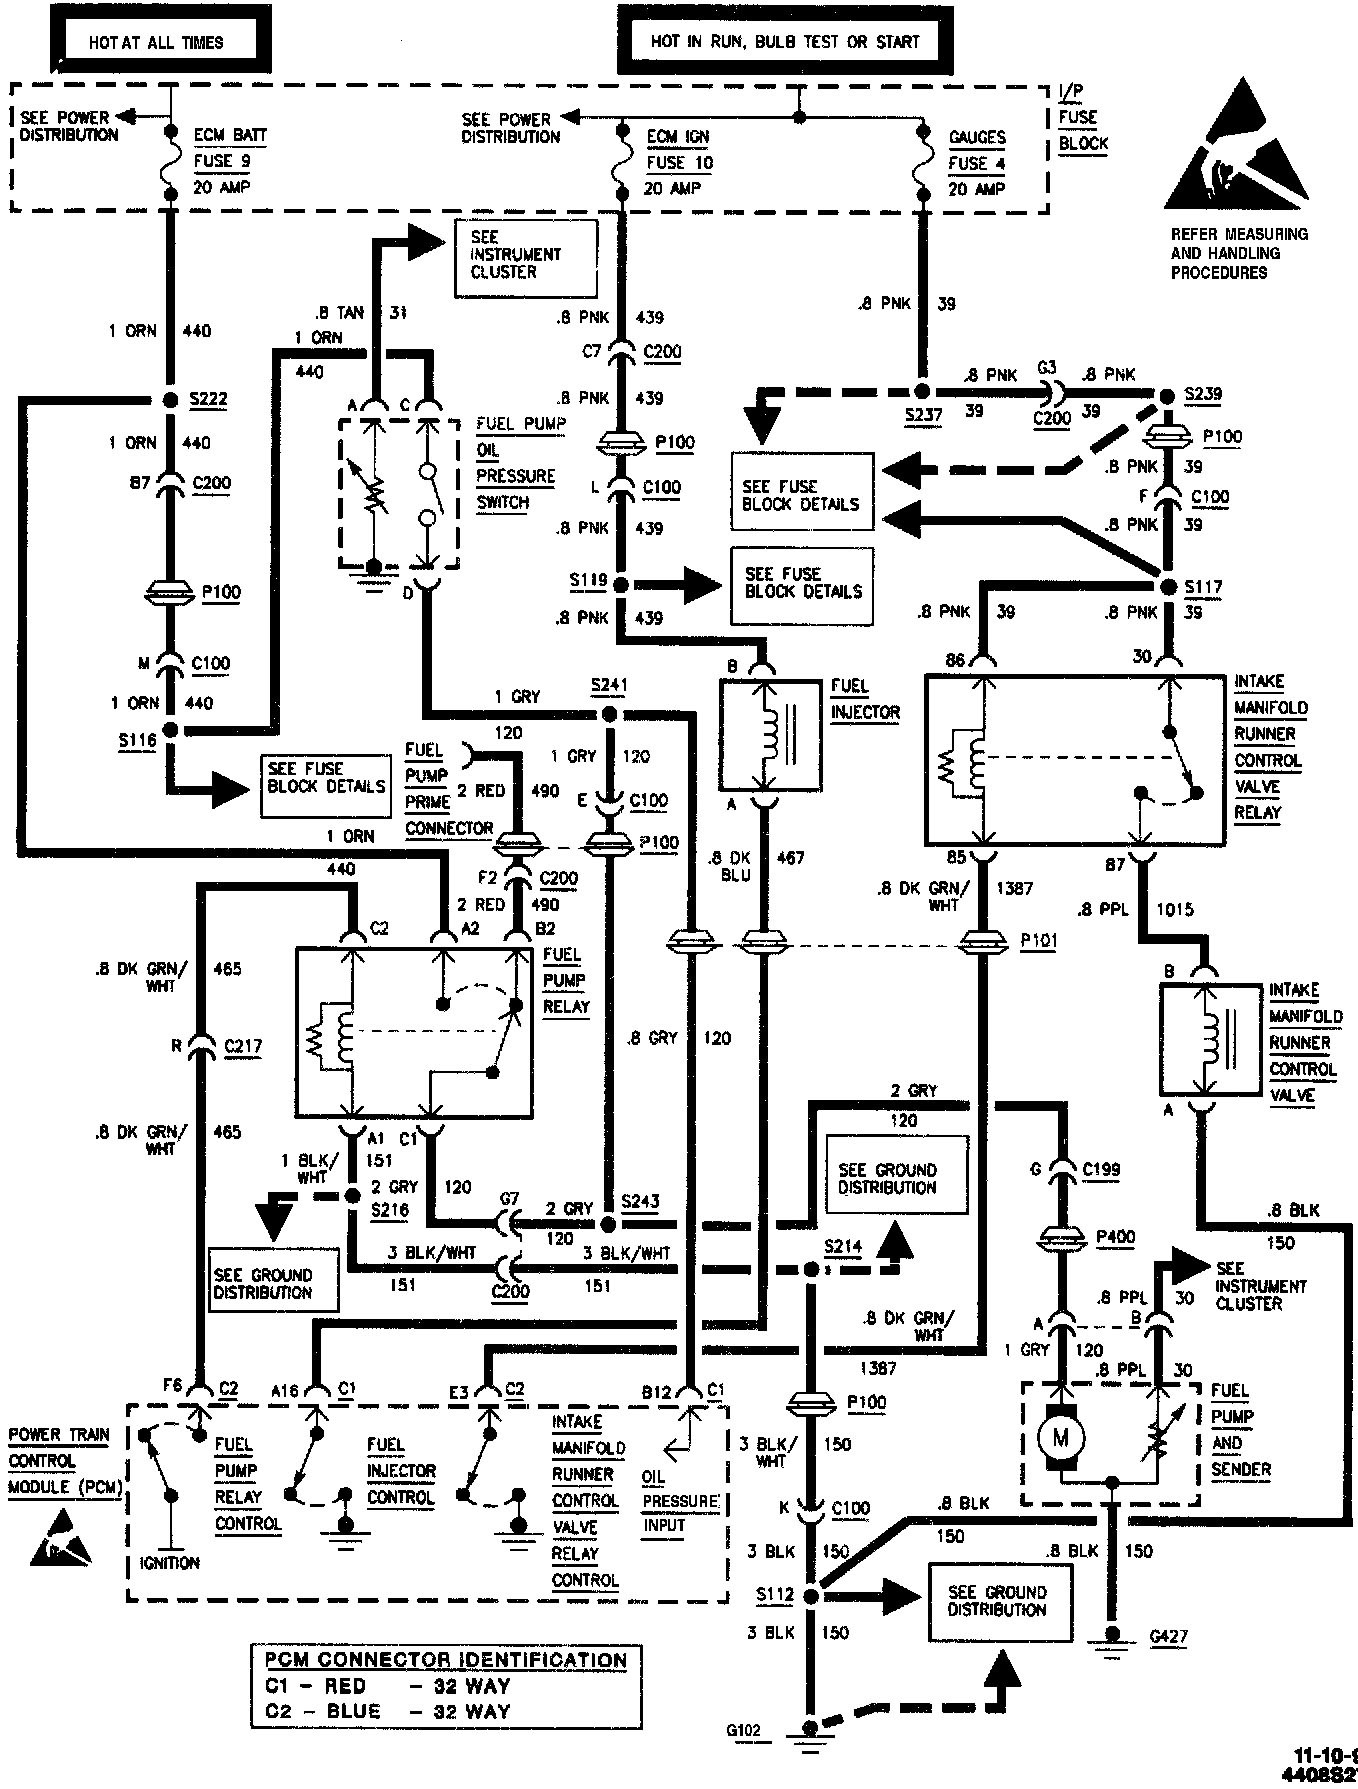 mack truck wiring - fusebox and wiring diagram cable-lot -  cable-lot.sirtarghe.it  diagram database